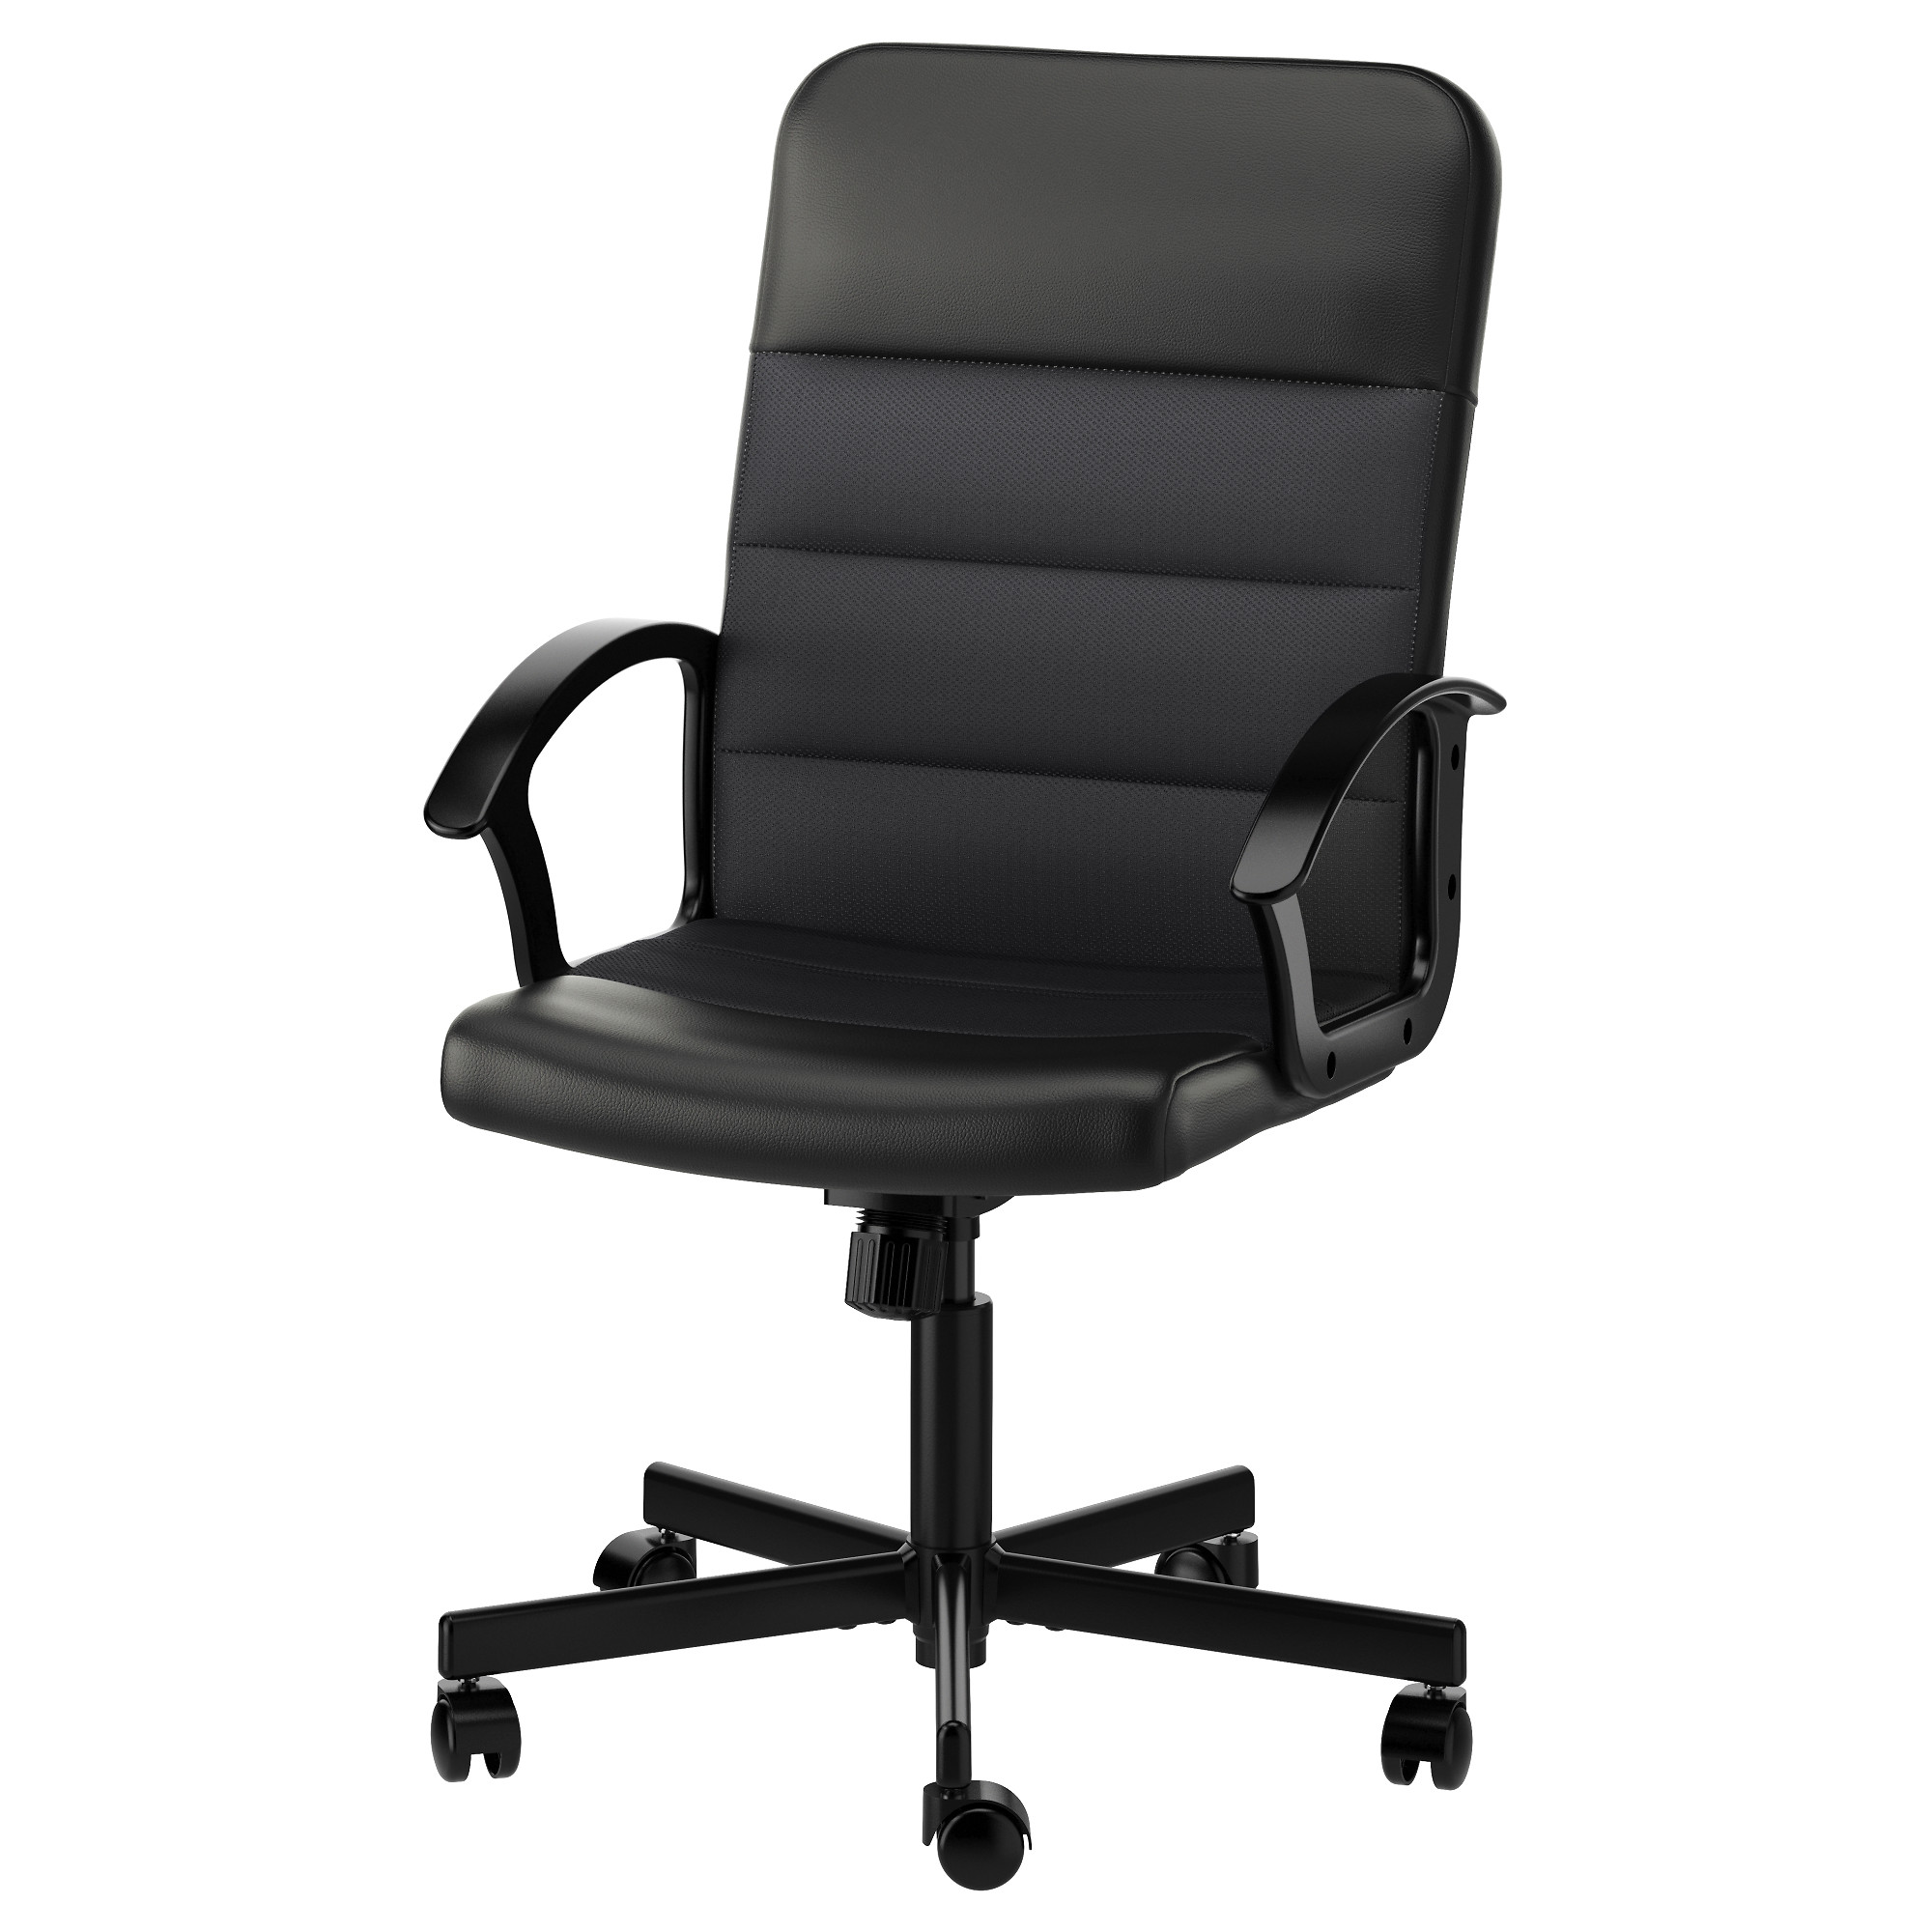 ikea red office chair renberget swivel chair bomstad black tested for 242 lb 8 oz width bedroomwonderful office chairs ikea